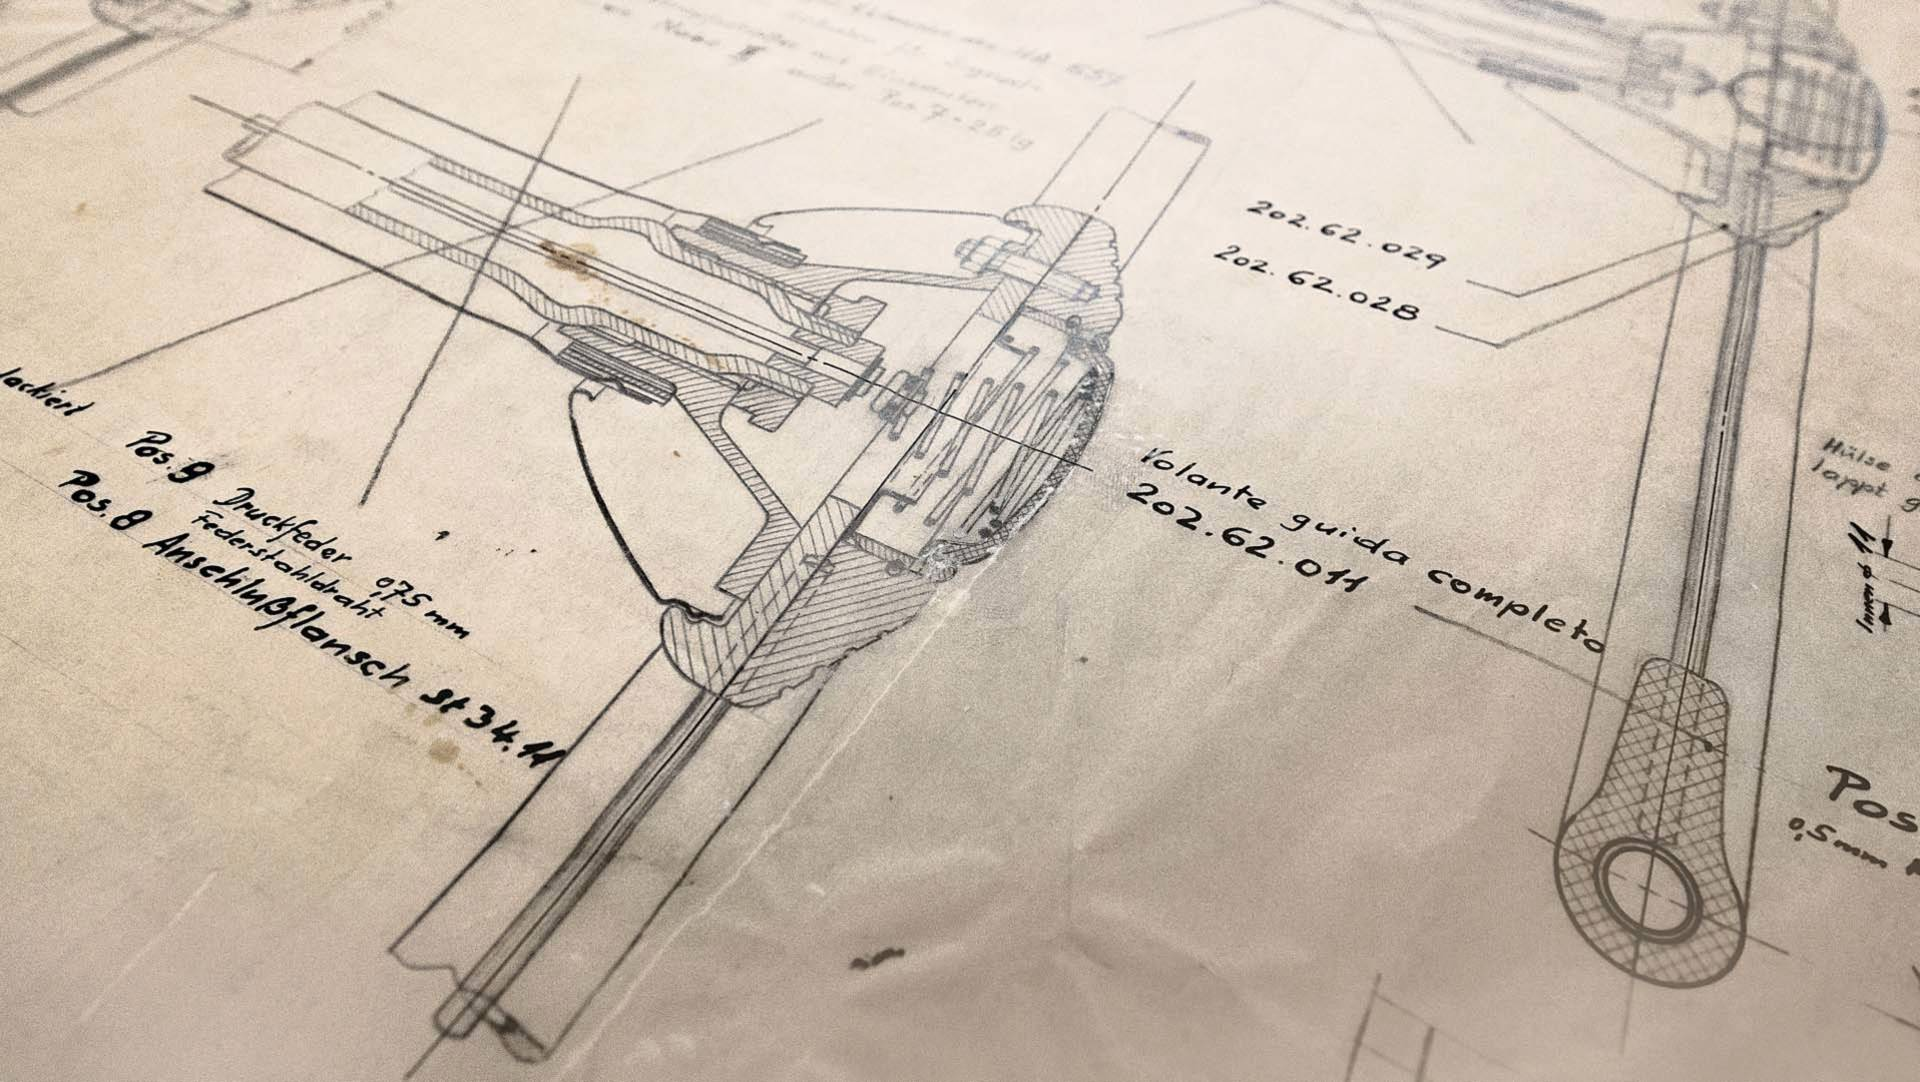 Awesome Porsche Design Archive Has More Than 100000 Drawings Build Engine Diagrams